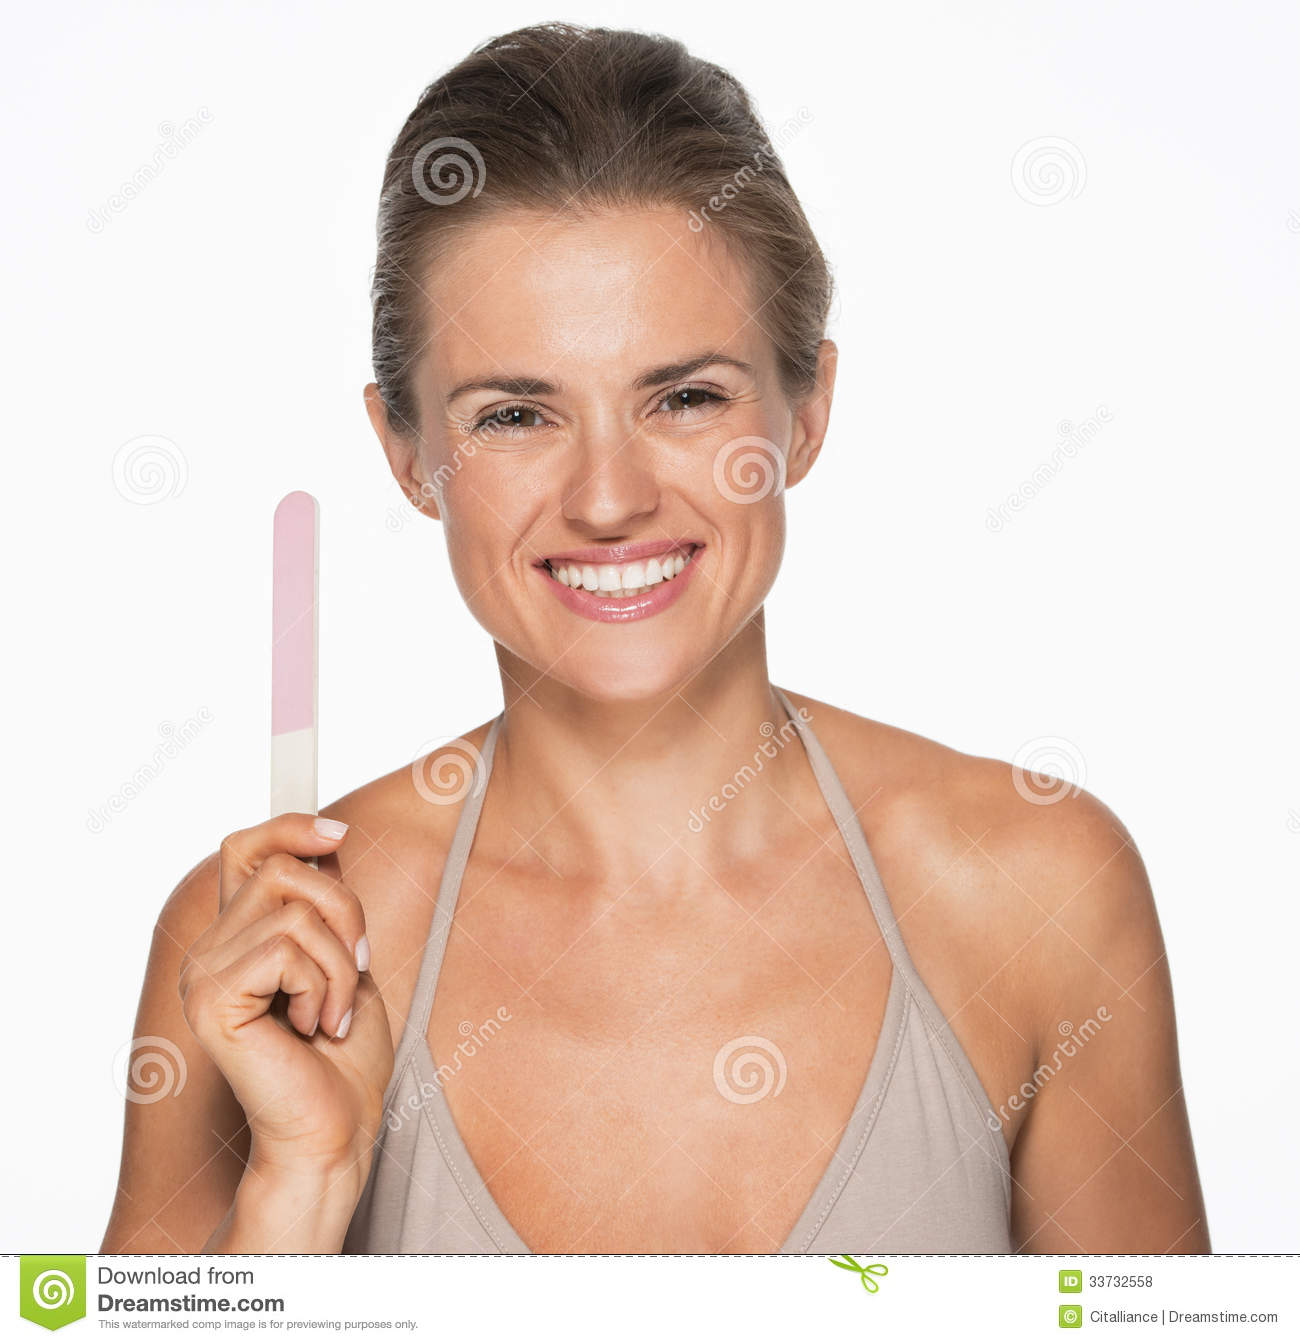 Smiling young woman showing nail file